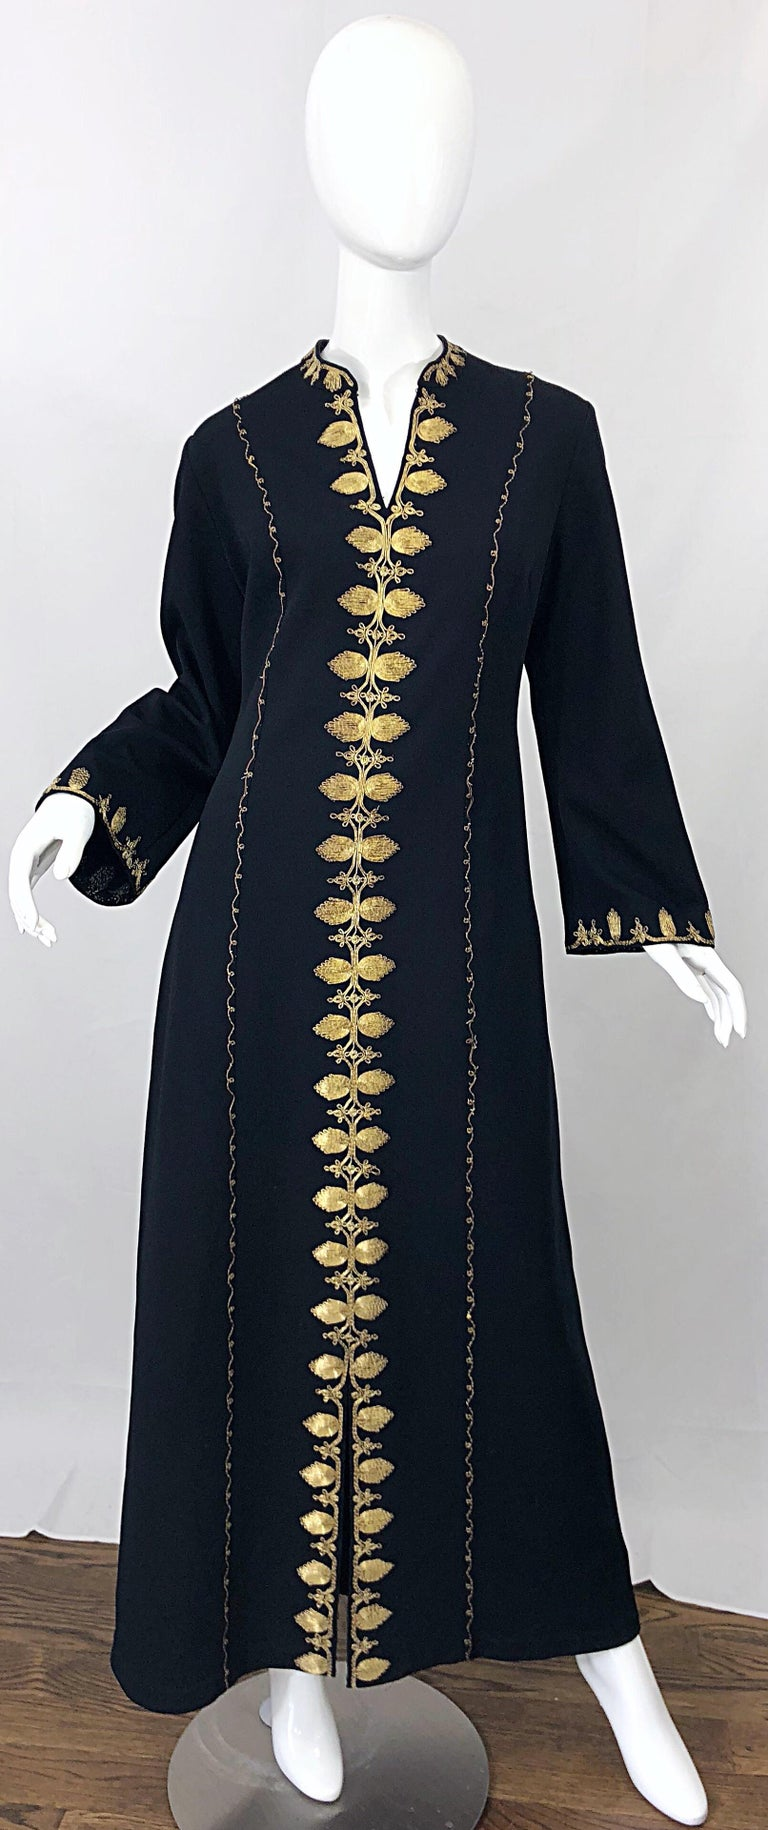 1970s Moroccan Black + Gold Metal Embroidered Vintage 70s Caftan Maxi Dress For Sale 5